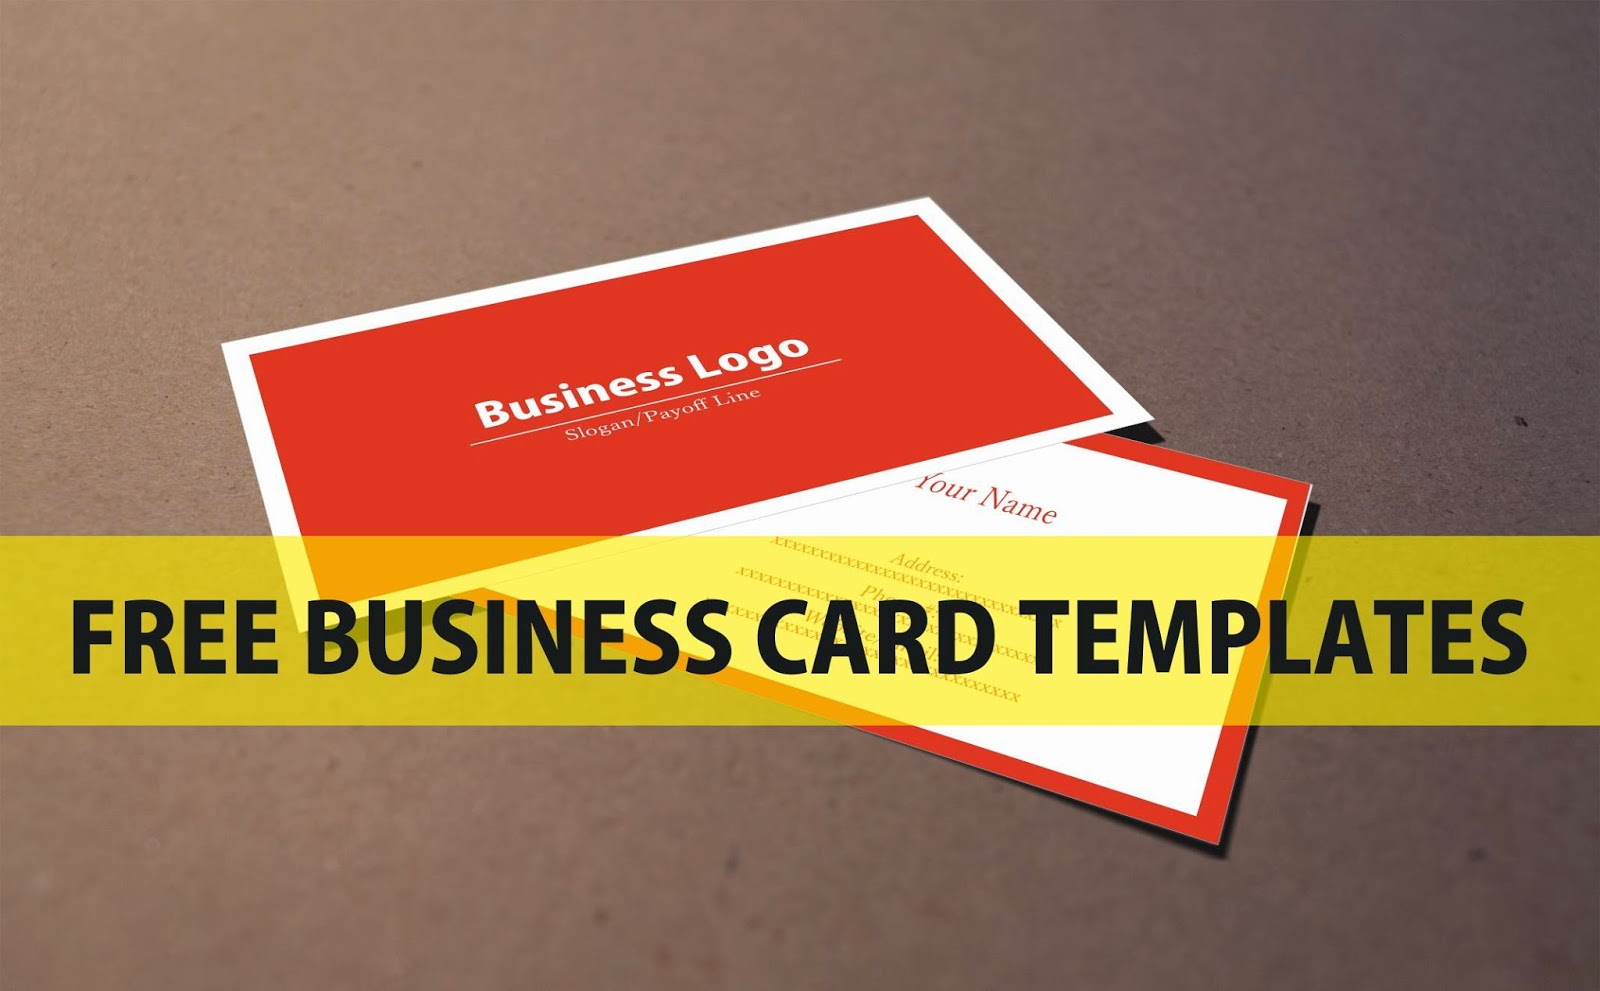 Freebusinesscardtemplatesg reheart Image collections